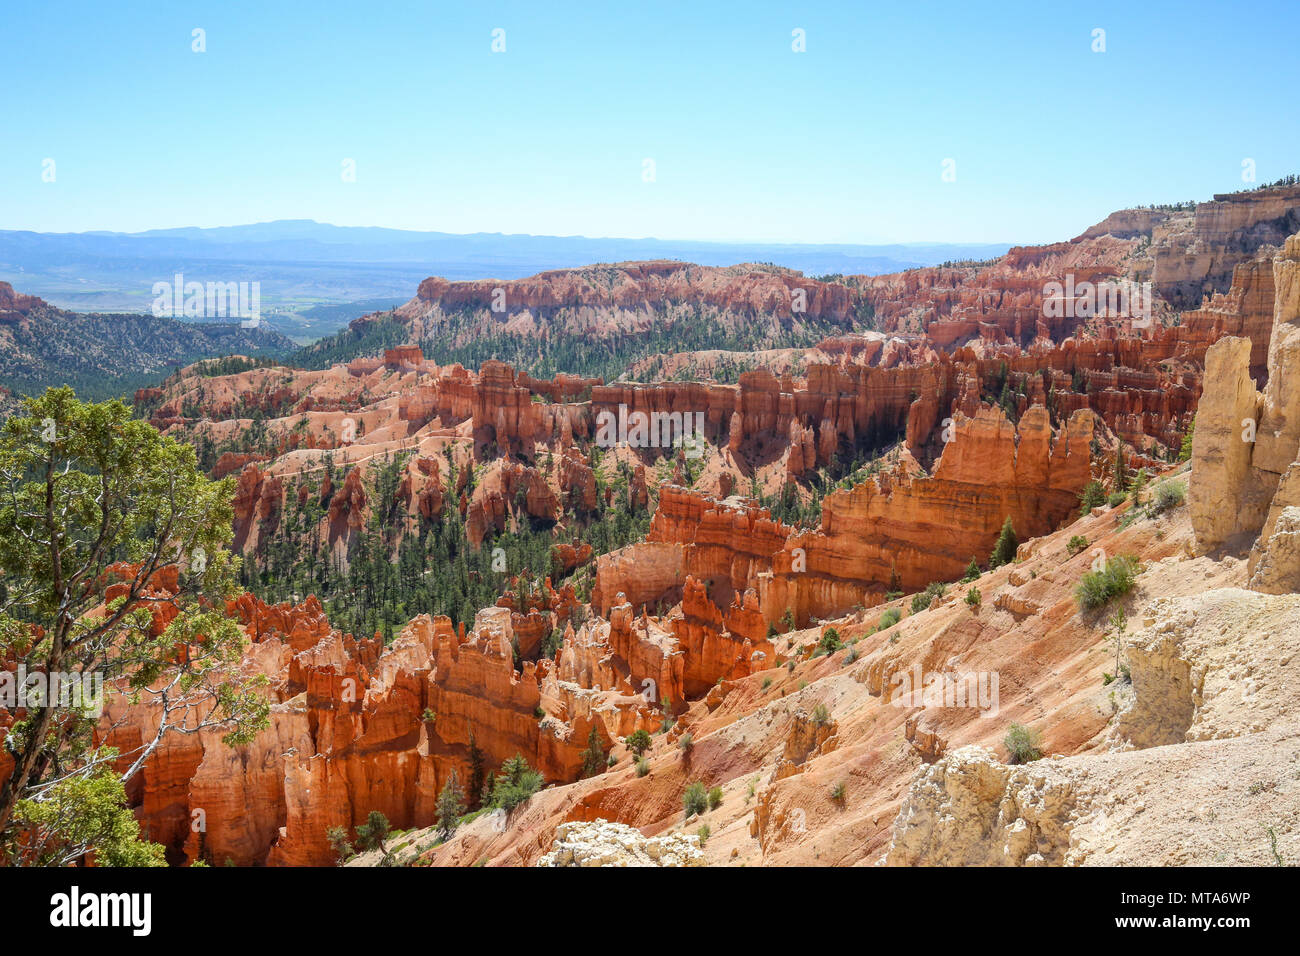 Hoodoos of Bryce Canyon in Bryce Canyon National Park, UT - Stock Image